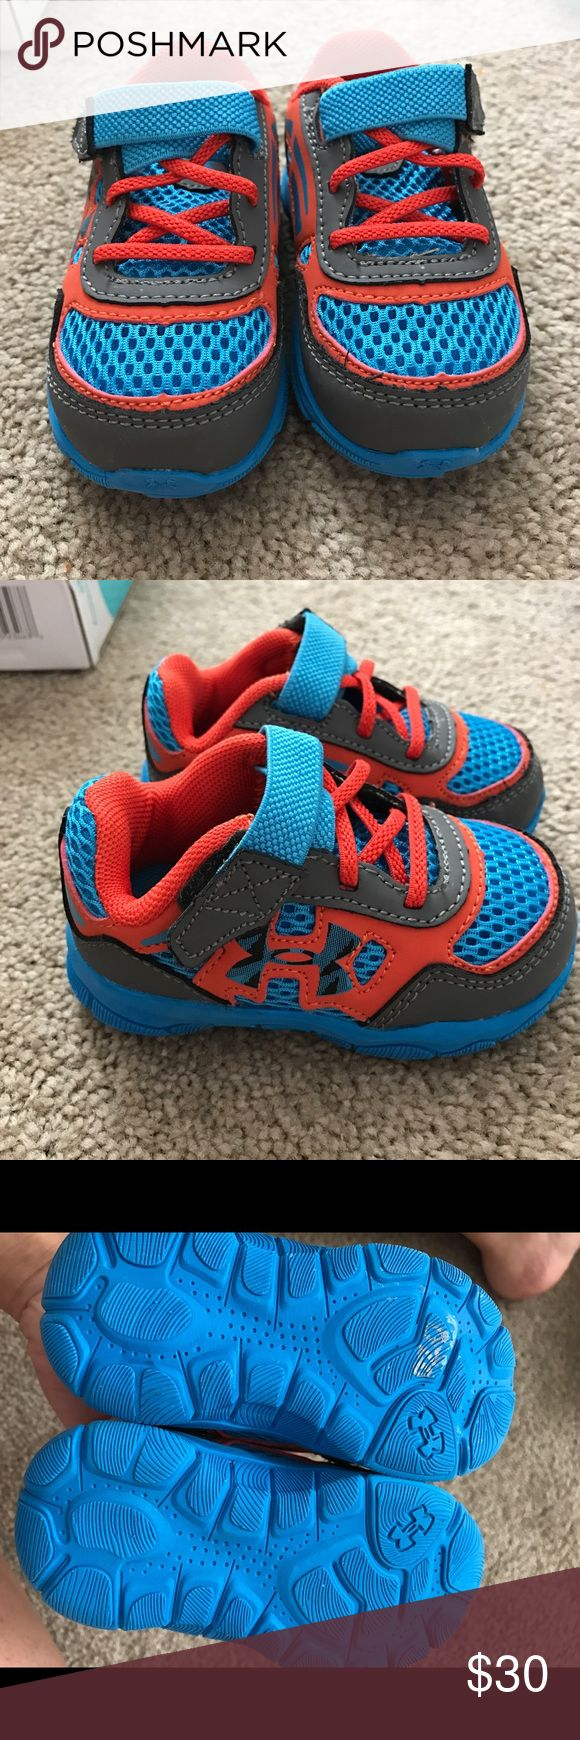 Under Amor boys shoes Worn once and way to small for my son now just forgot about these.. in EUC like new! Comes with box as well. Under Armour Shoes Baby & Walker